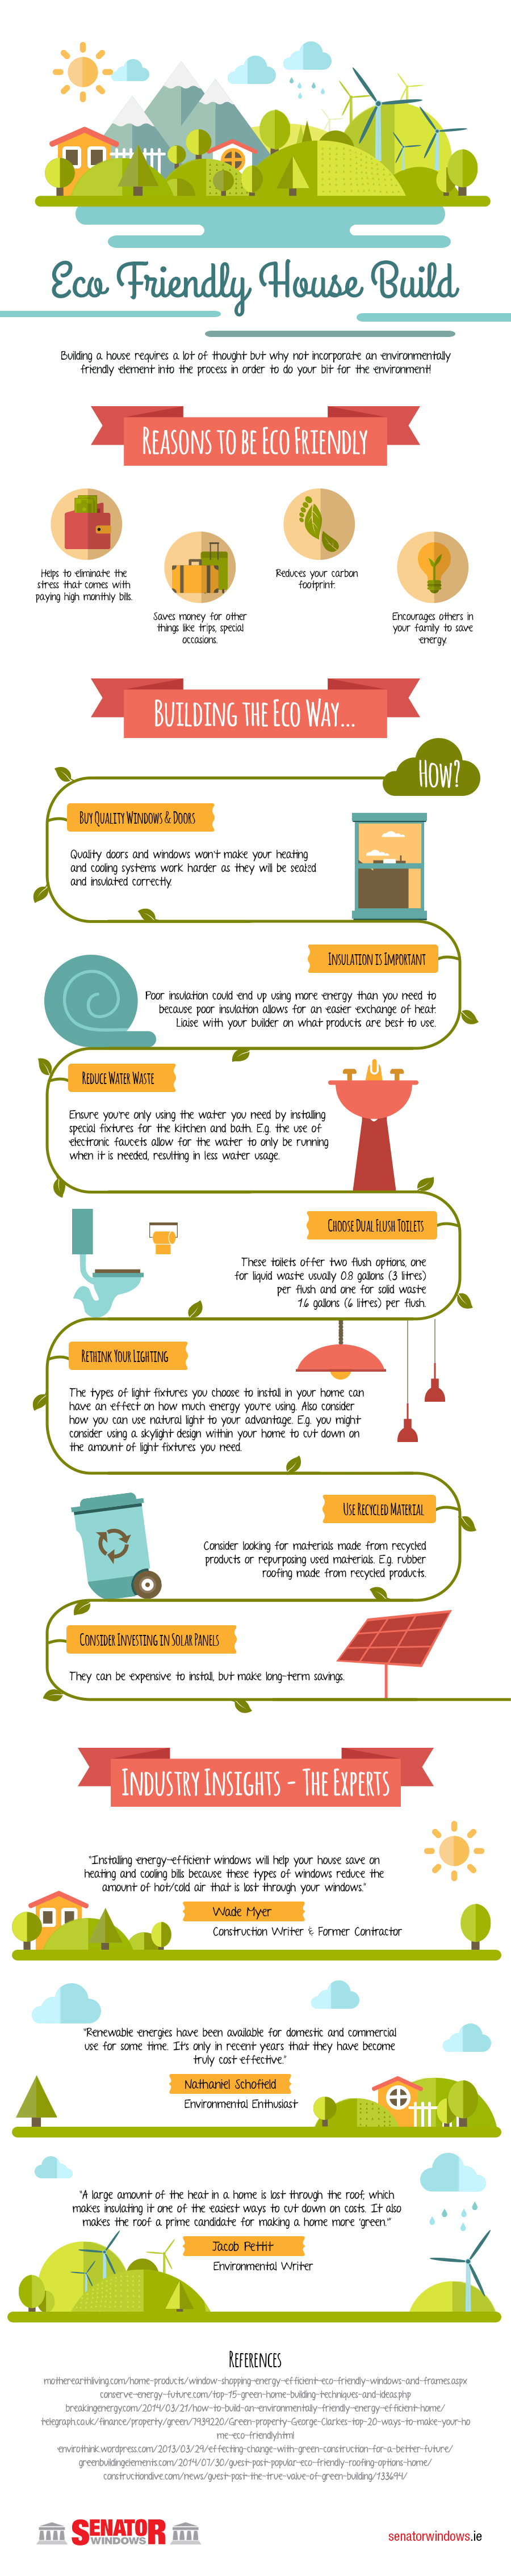 Eco-Friendly-House-Build-Infographic